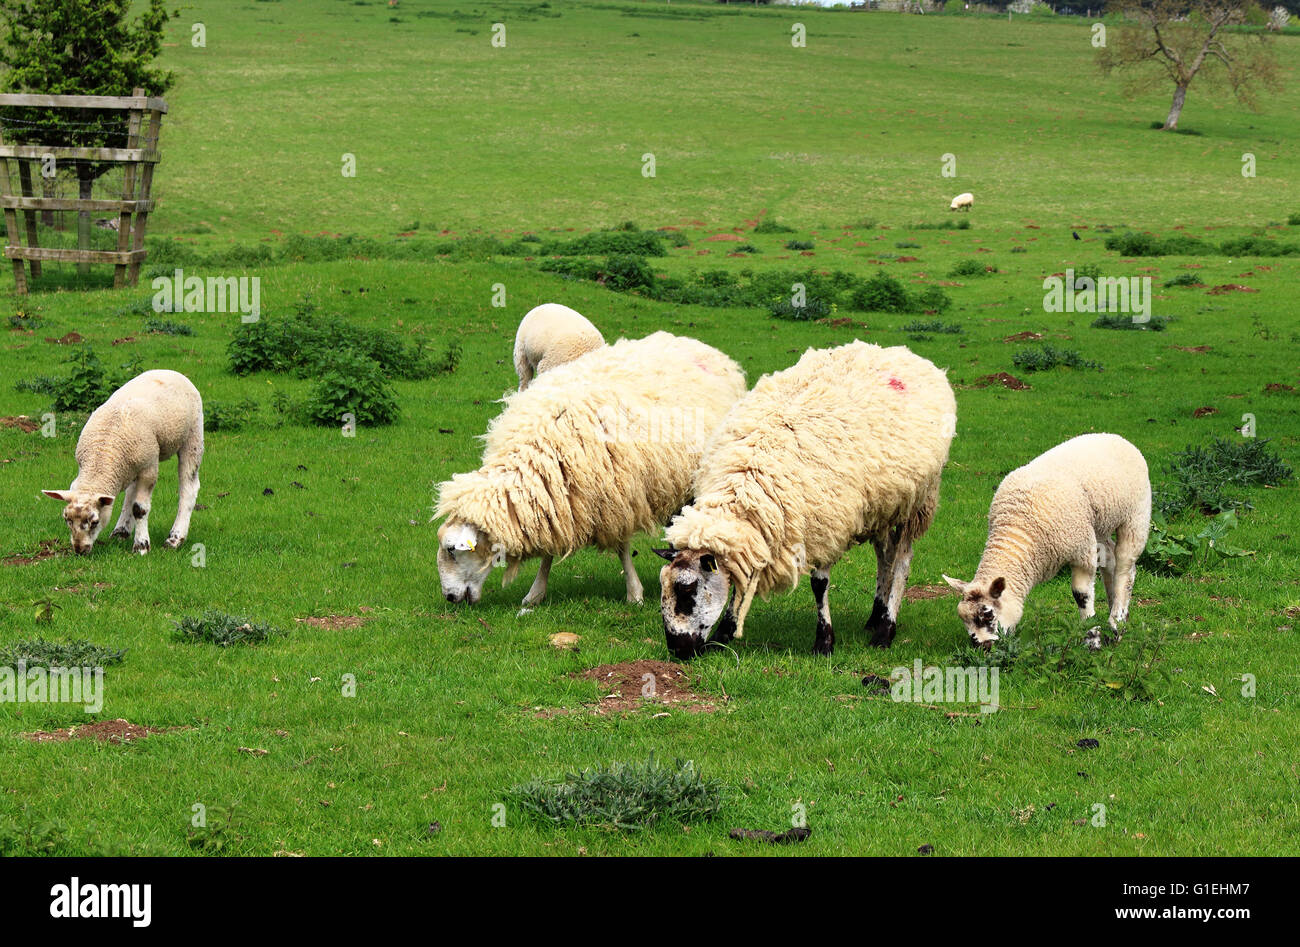 Badger faced Ewes and lambs grazing on open pasture - Stock Image